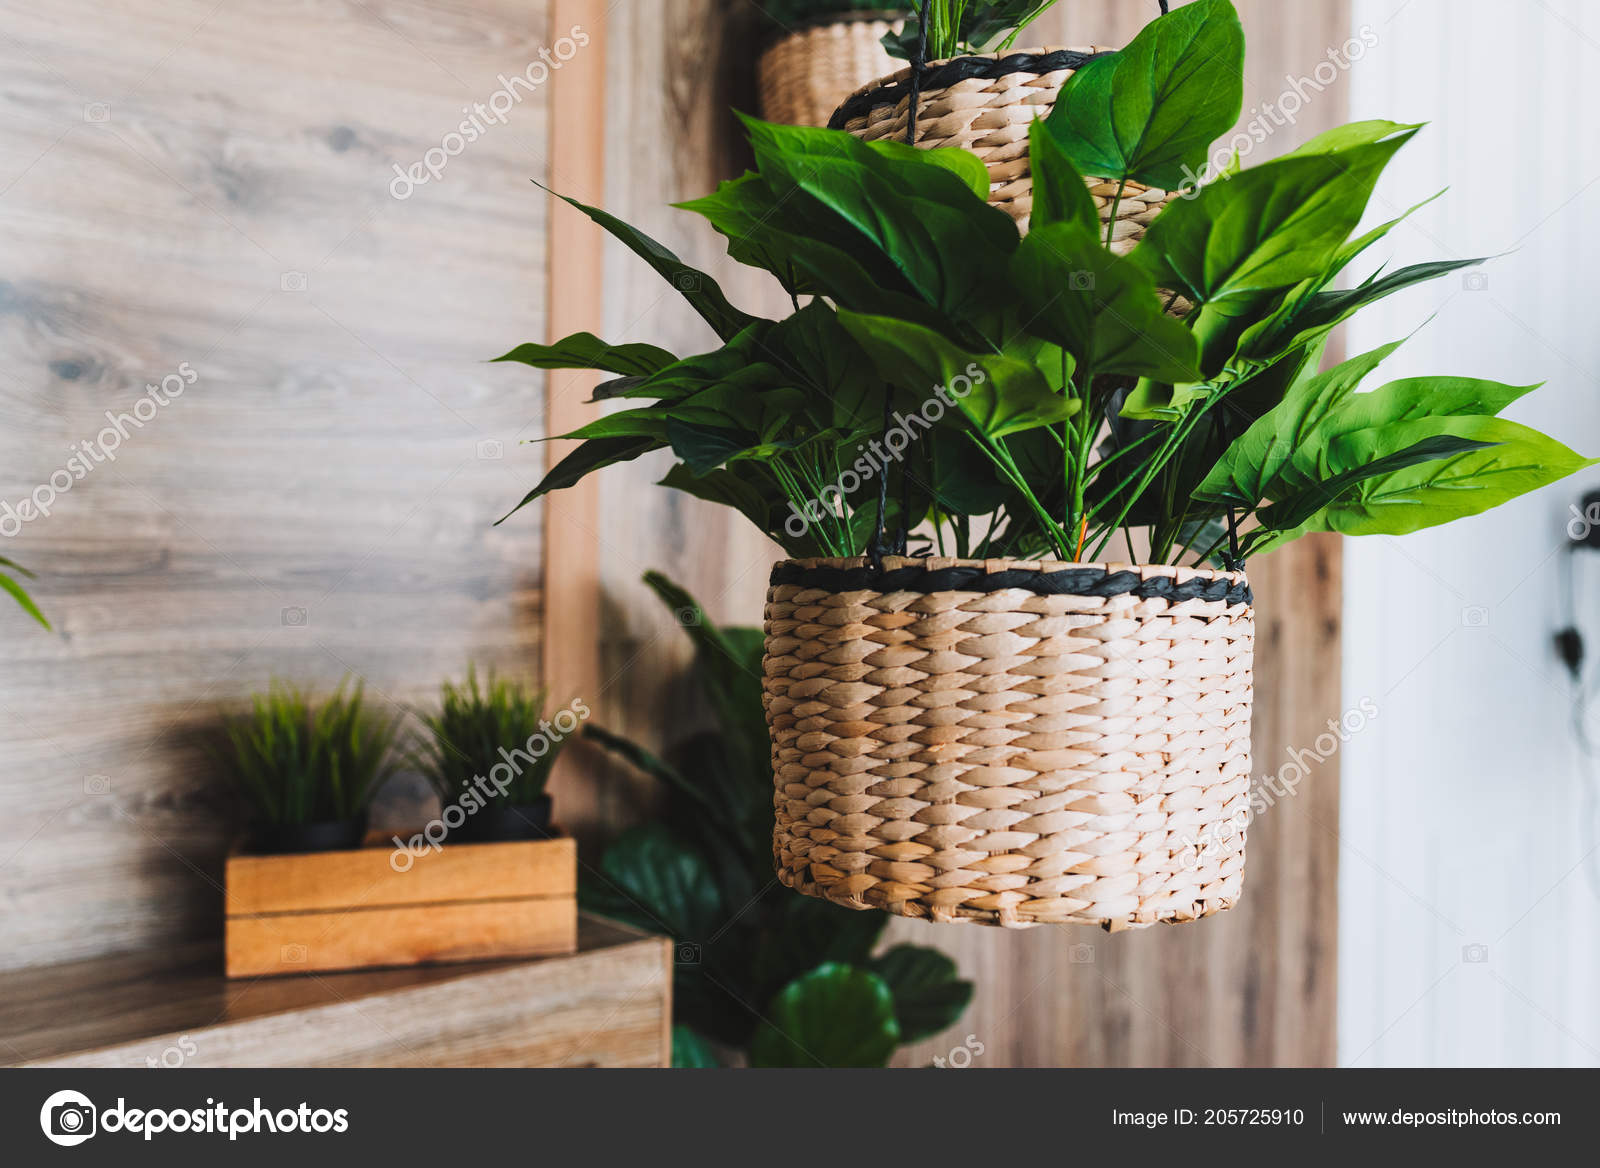 Modern potted evergreen artificial plants used interior decor